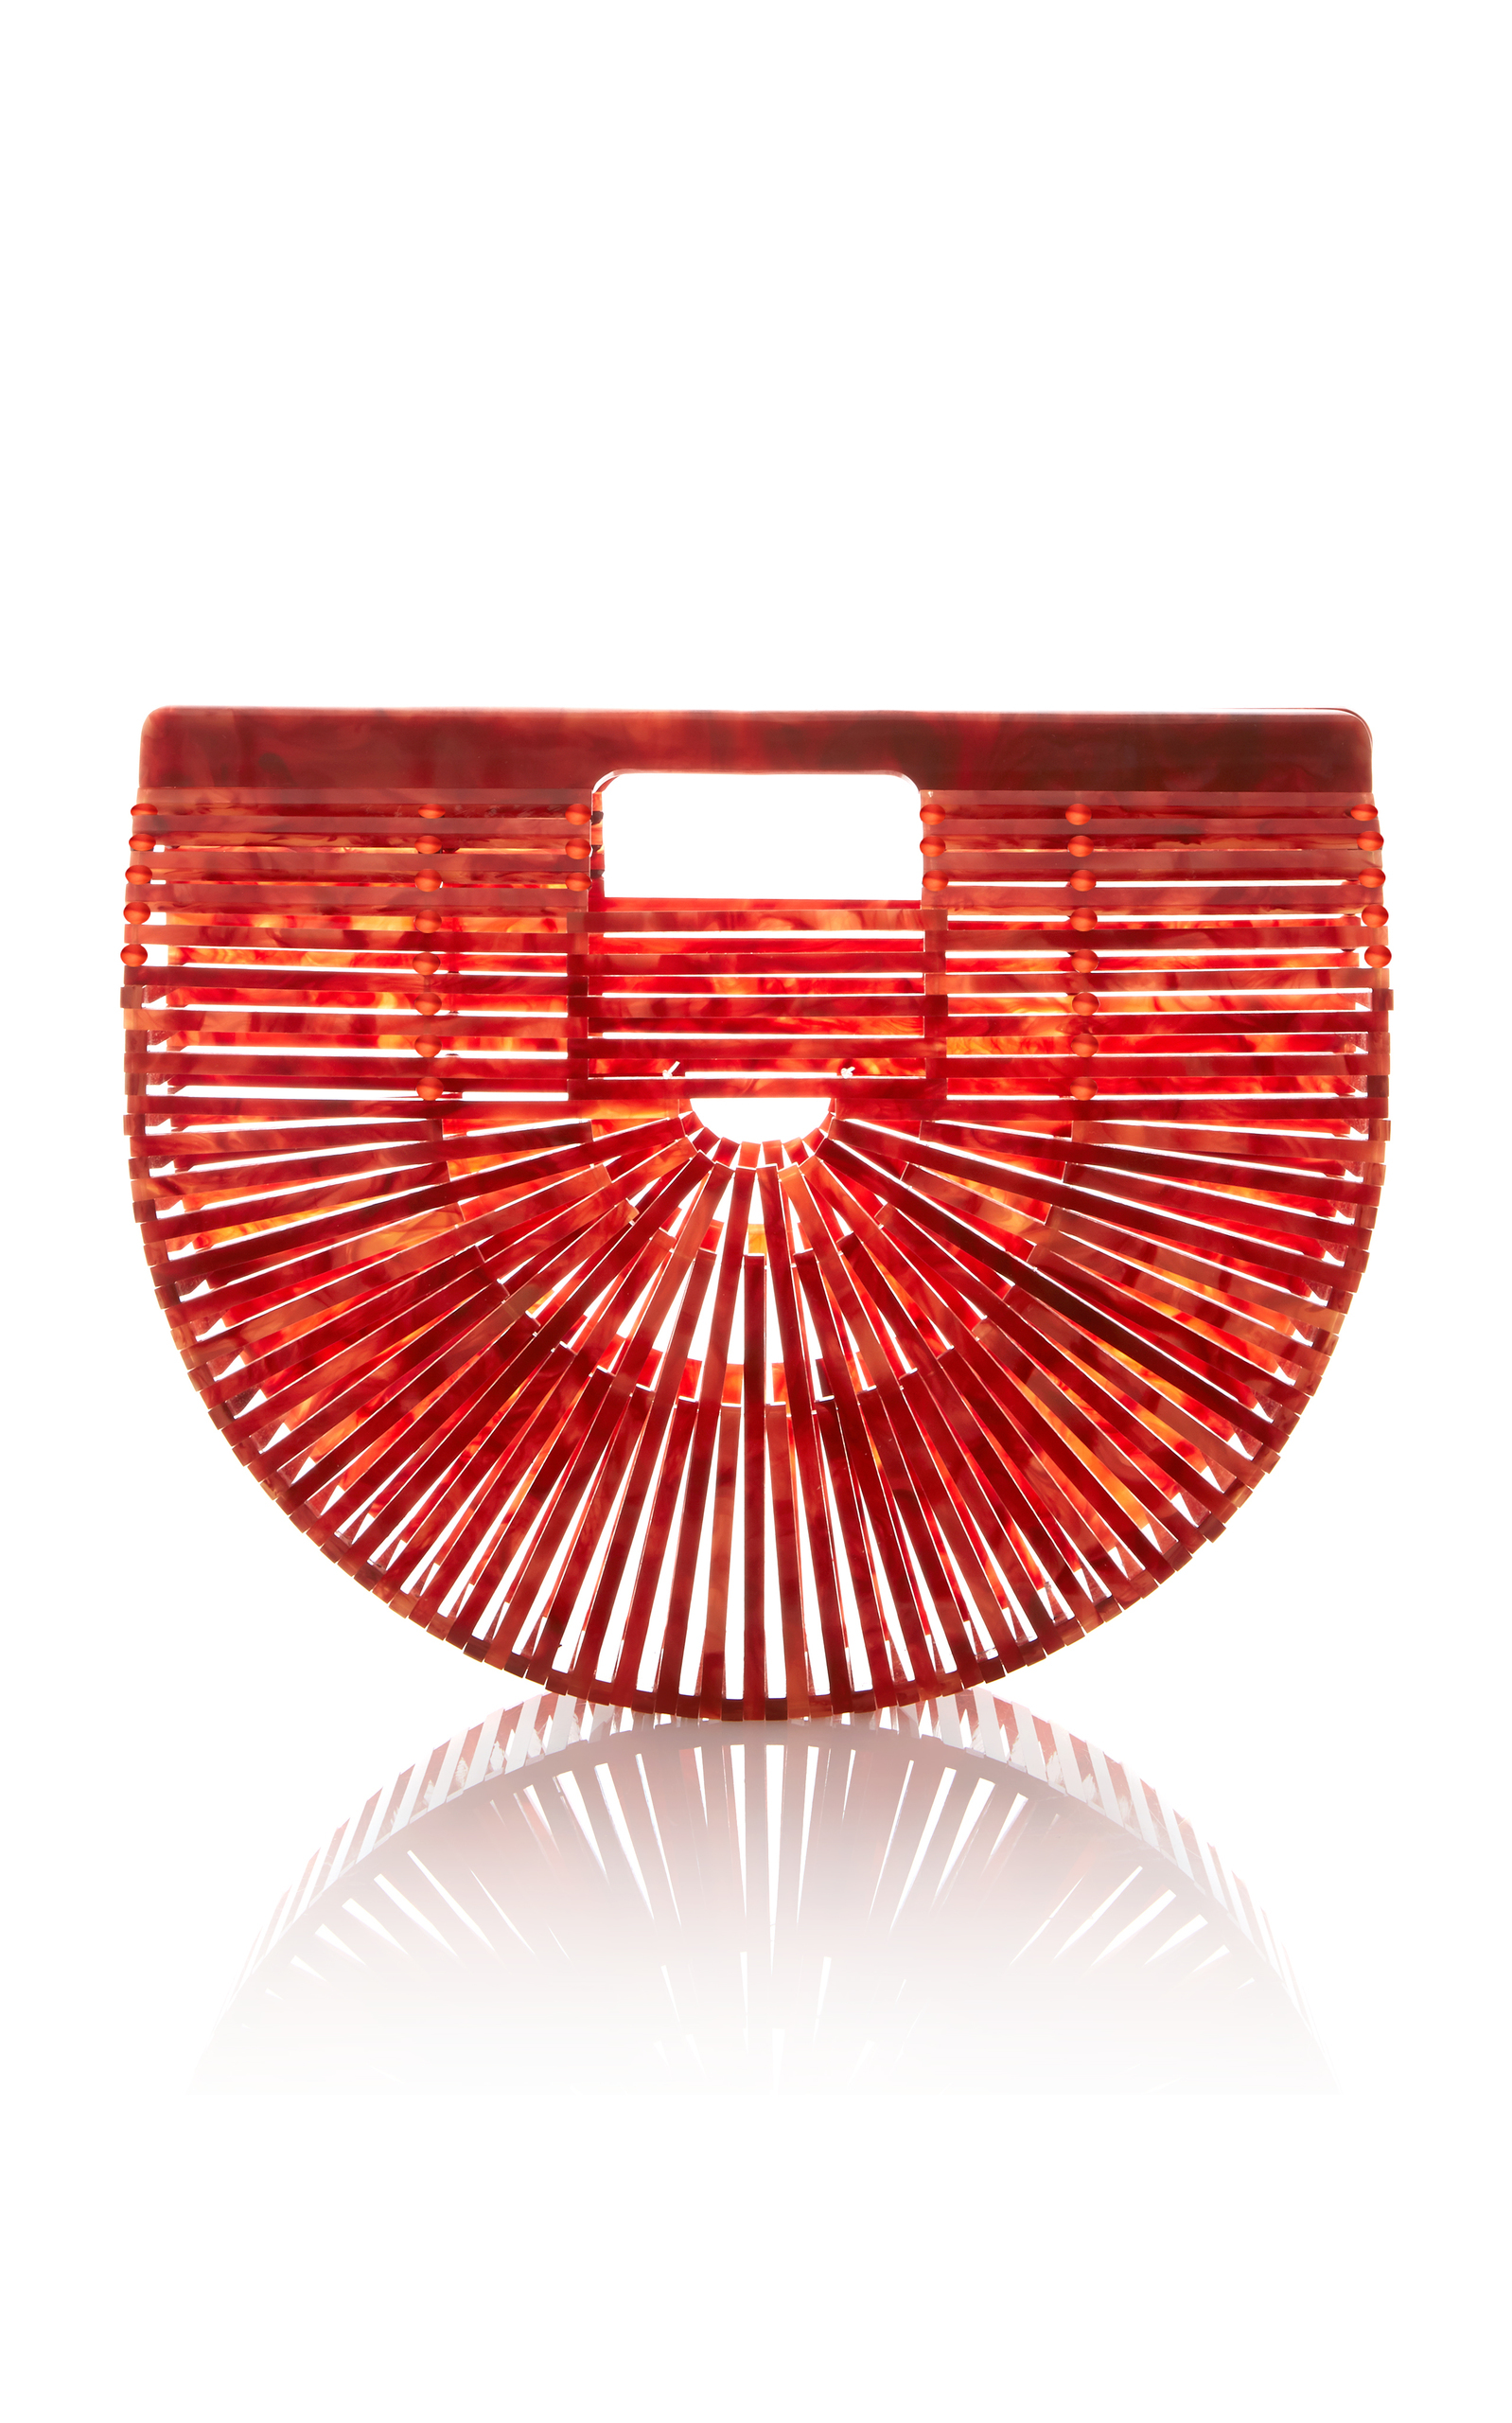 Ark Mini Acrylic Clutch Bag, Orange in Red